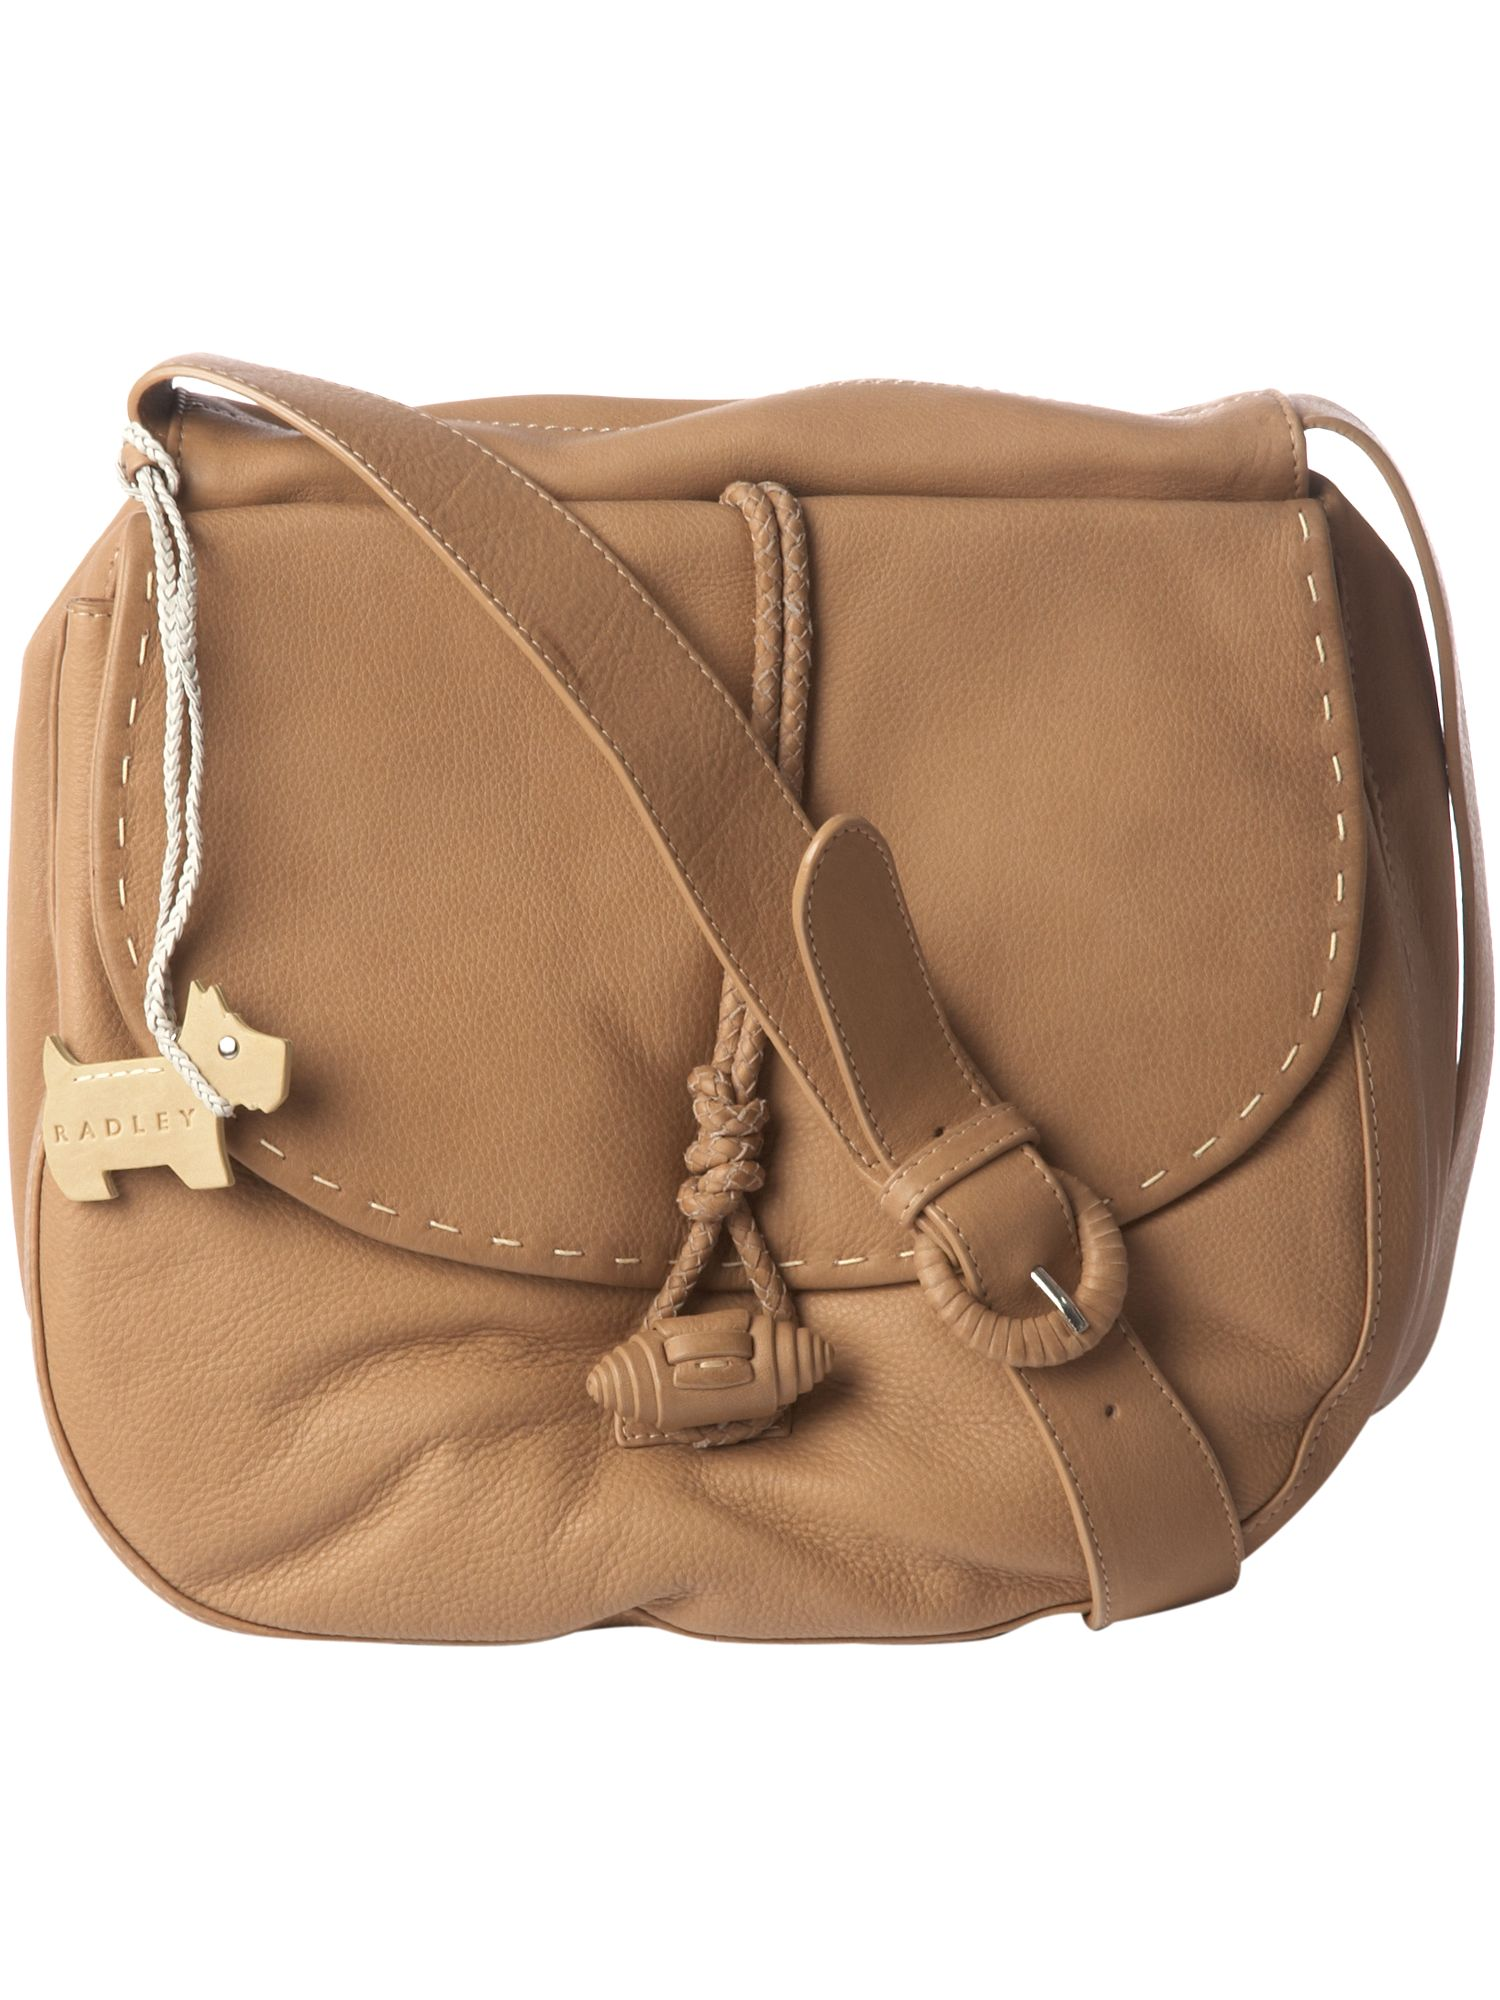 Notting Hill leather flapover cross body